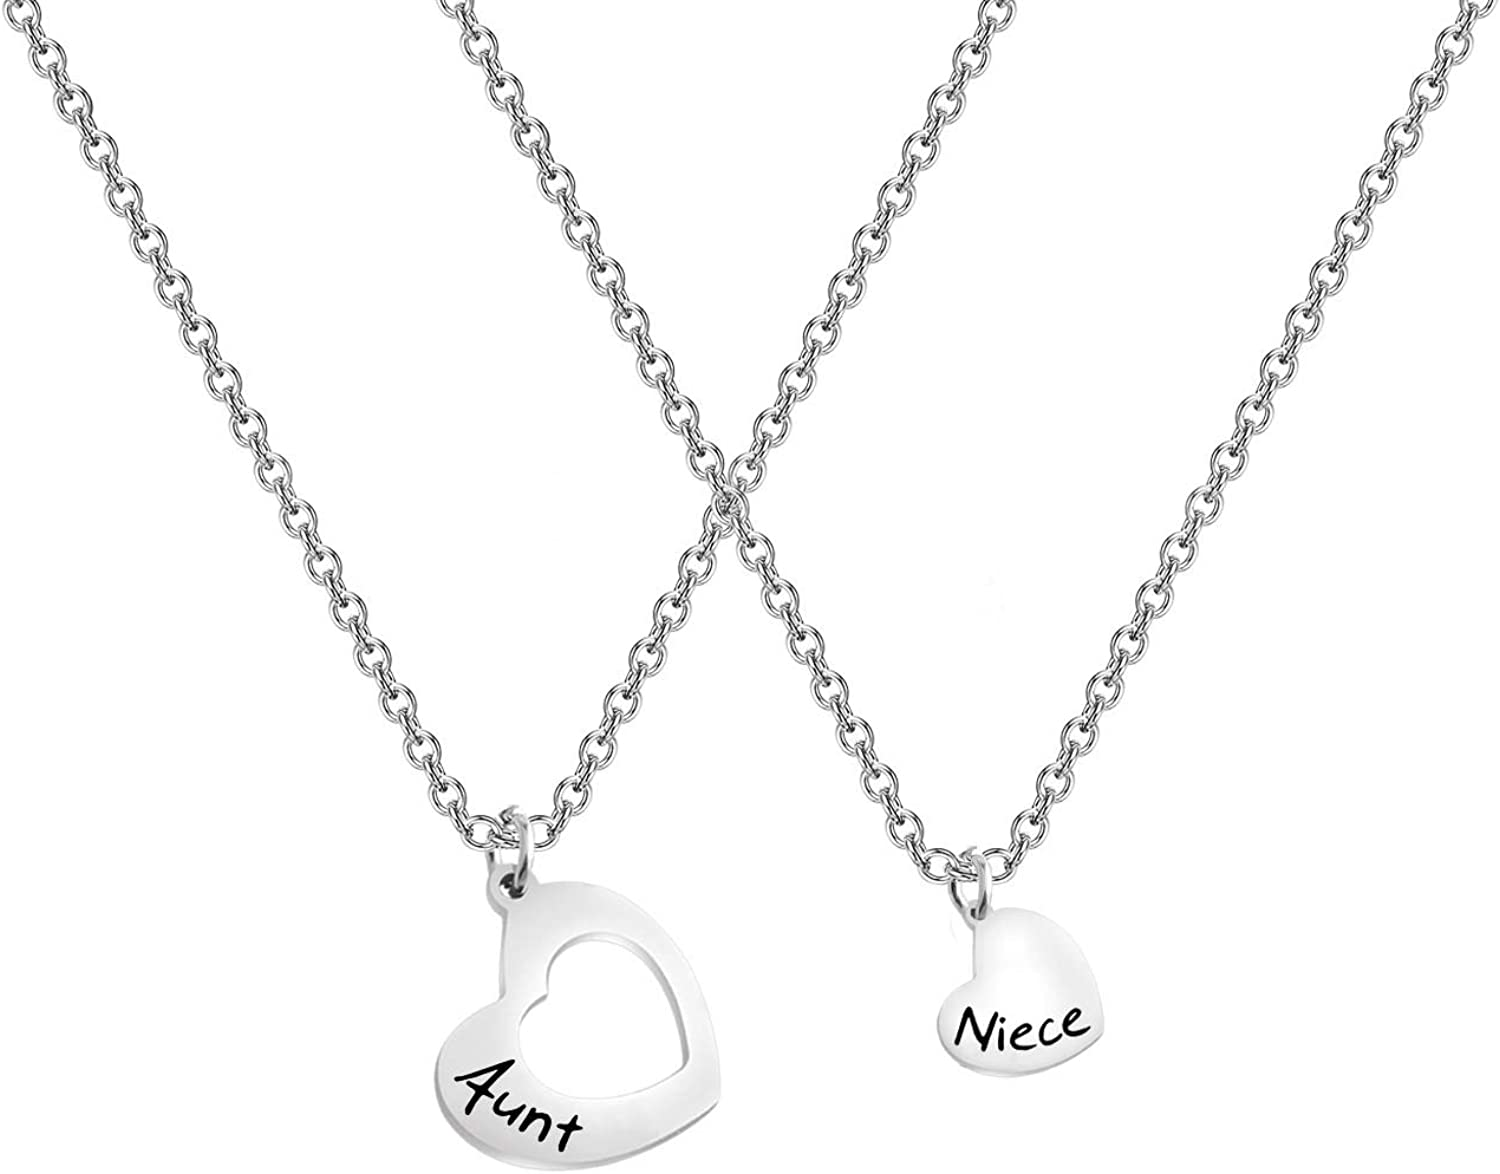 AKTAP Gift for Aunt Necklace Auntie And Niece Love Heart Pendant Necklace Gifts for Aunt from Niece Nephew